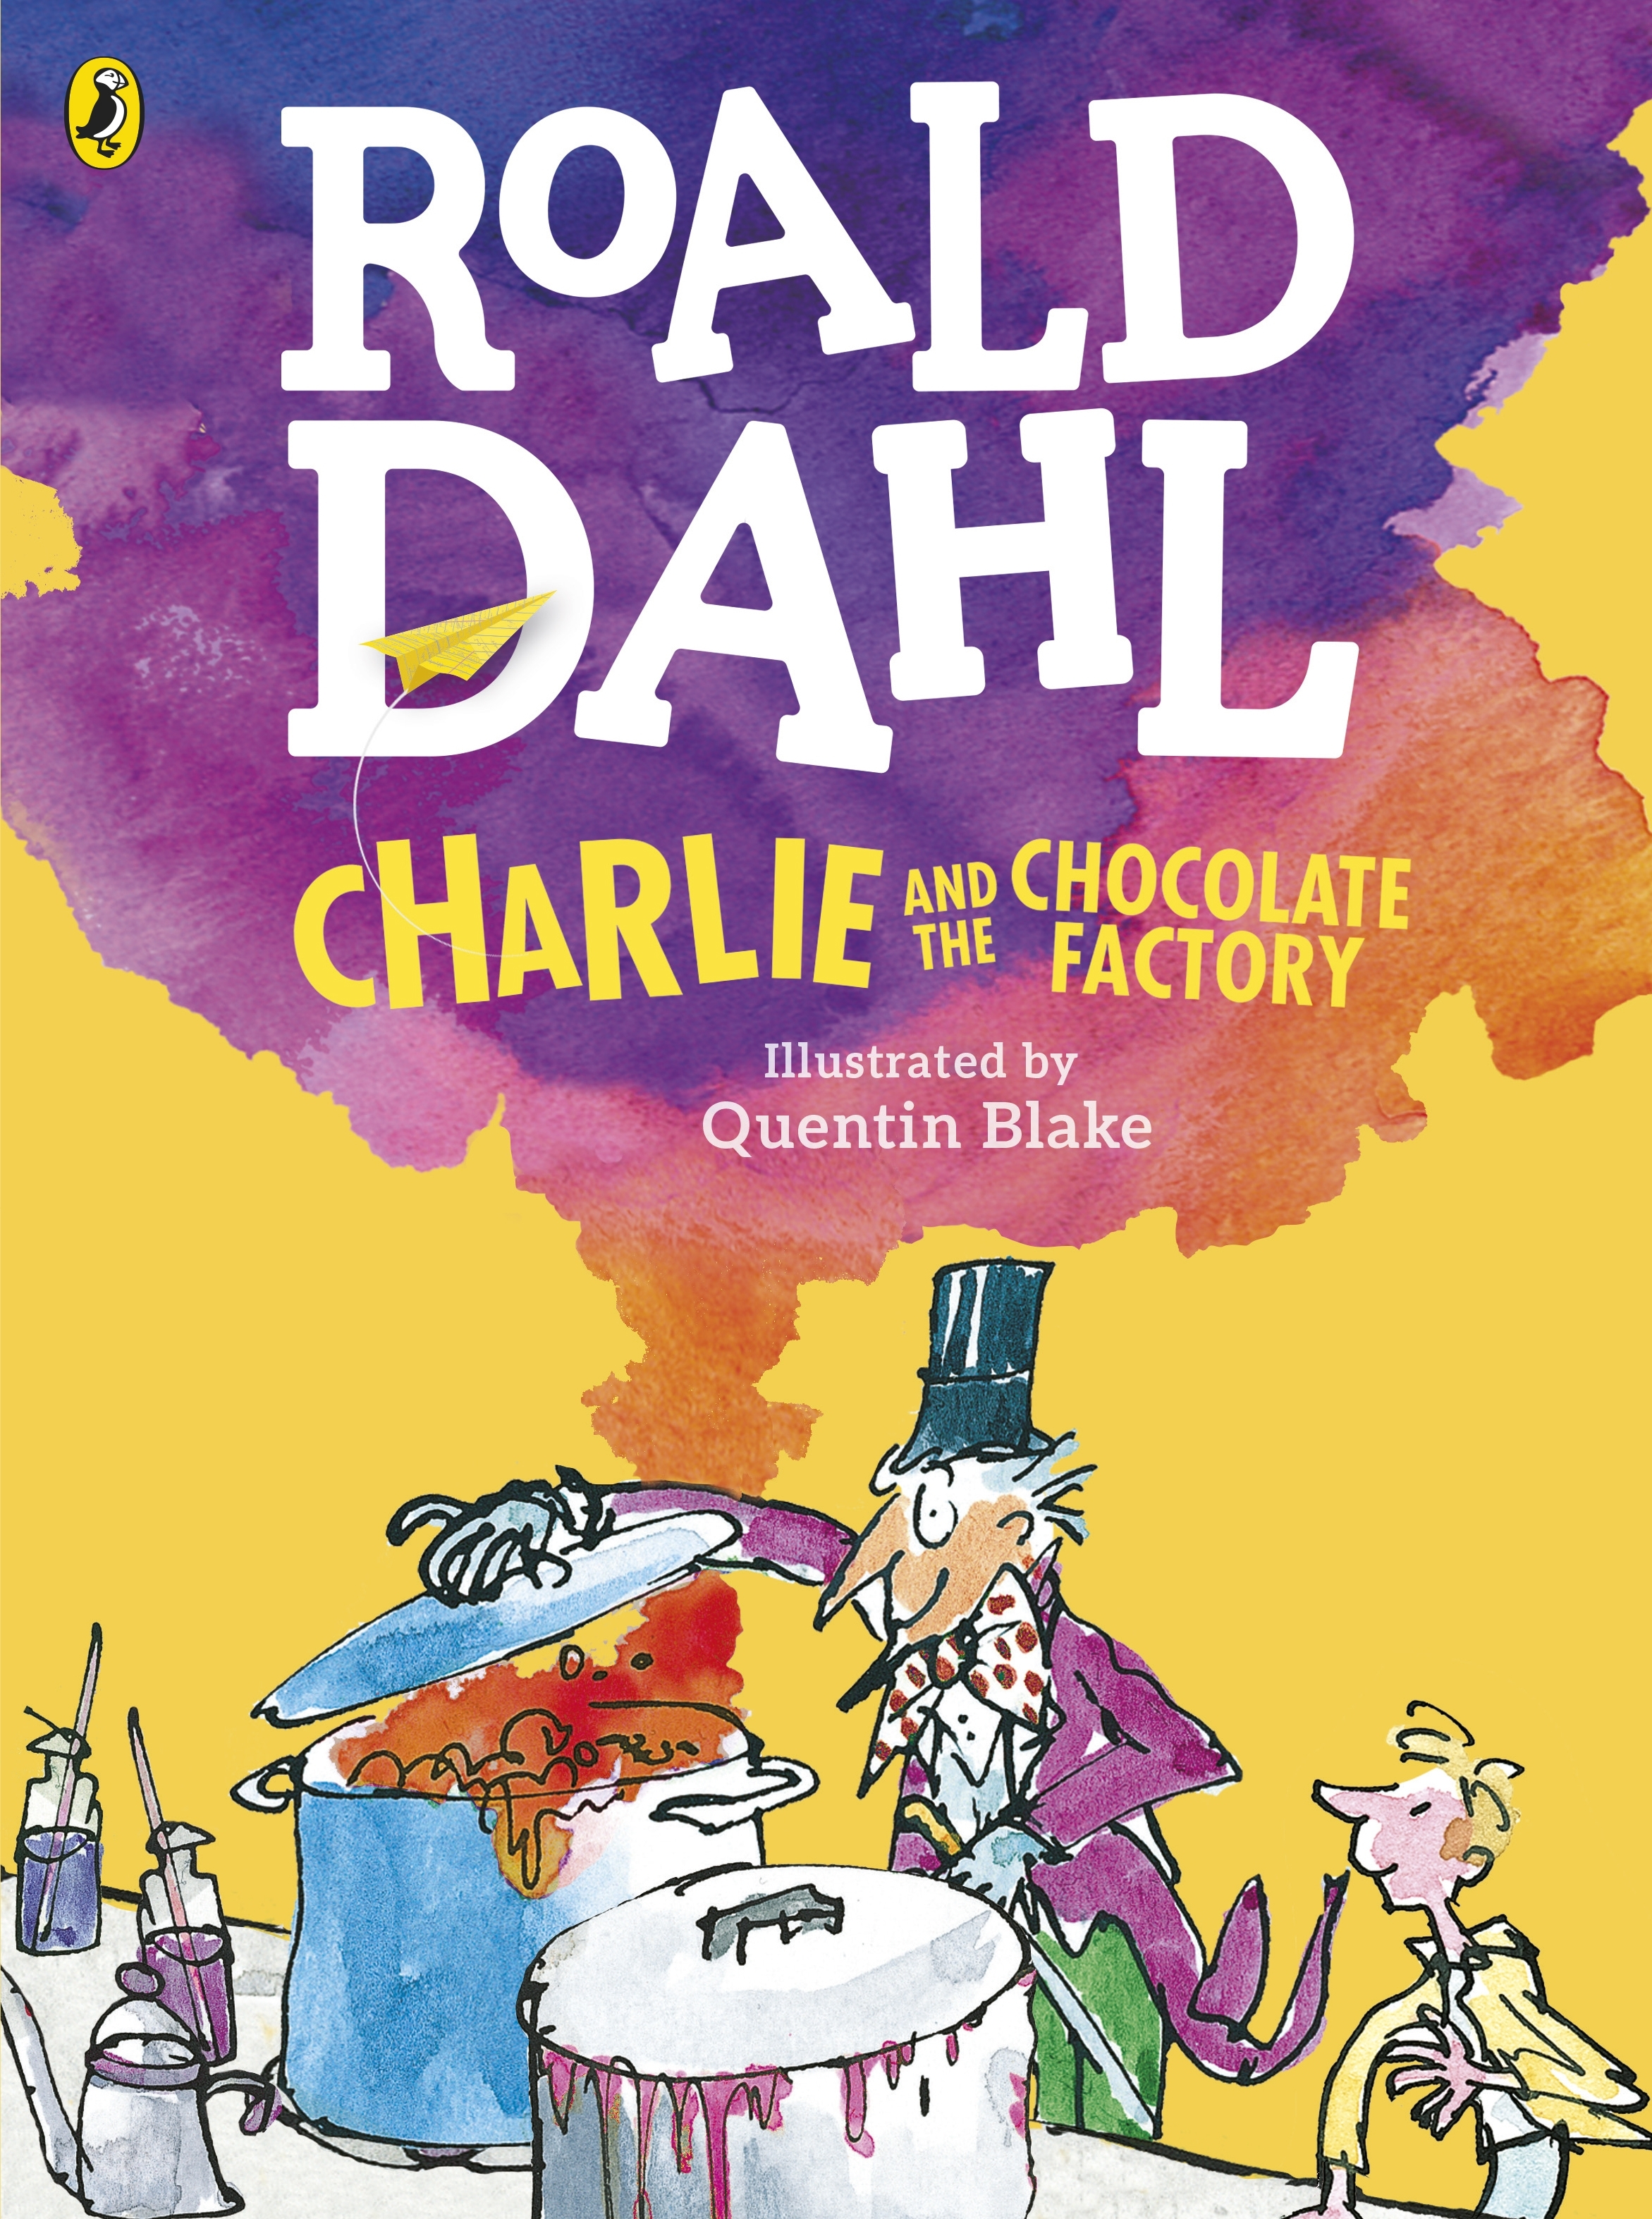 """a literary analysis of the charlie and the chocolate factory by roald dahl In stories like """"matilda"""" and """"charlie and the chocolate factory,""""  roald dahl,  the british author of children's books, wrote in a tiny  the same easy  satisfactions: it was a fast-paced, plot-driven celebration of empty calories."""